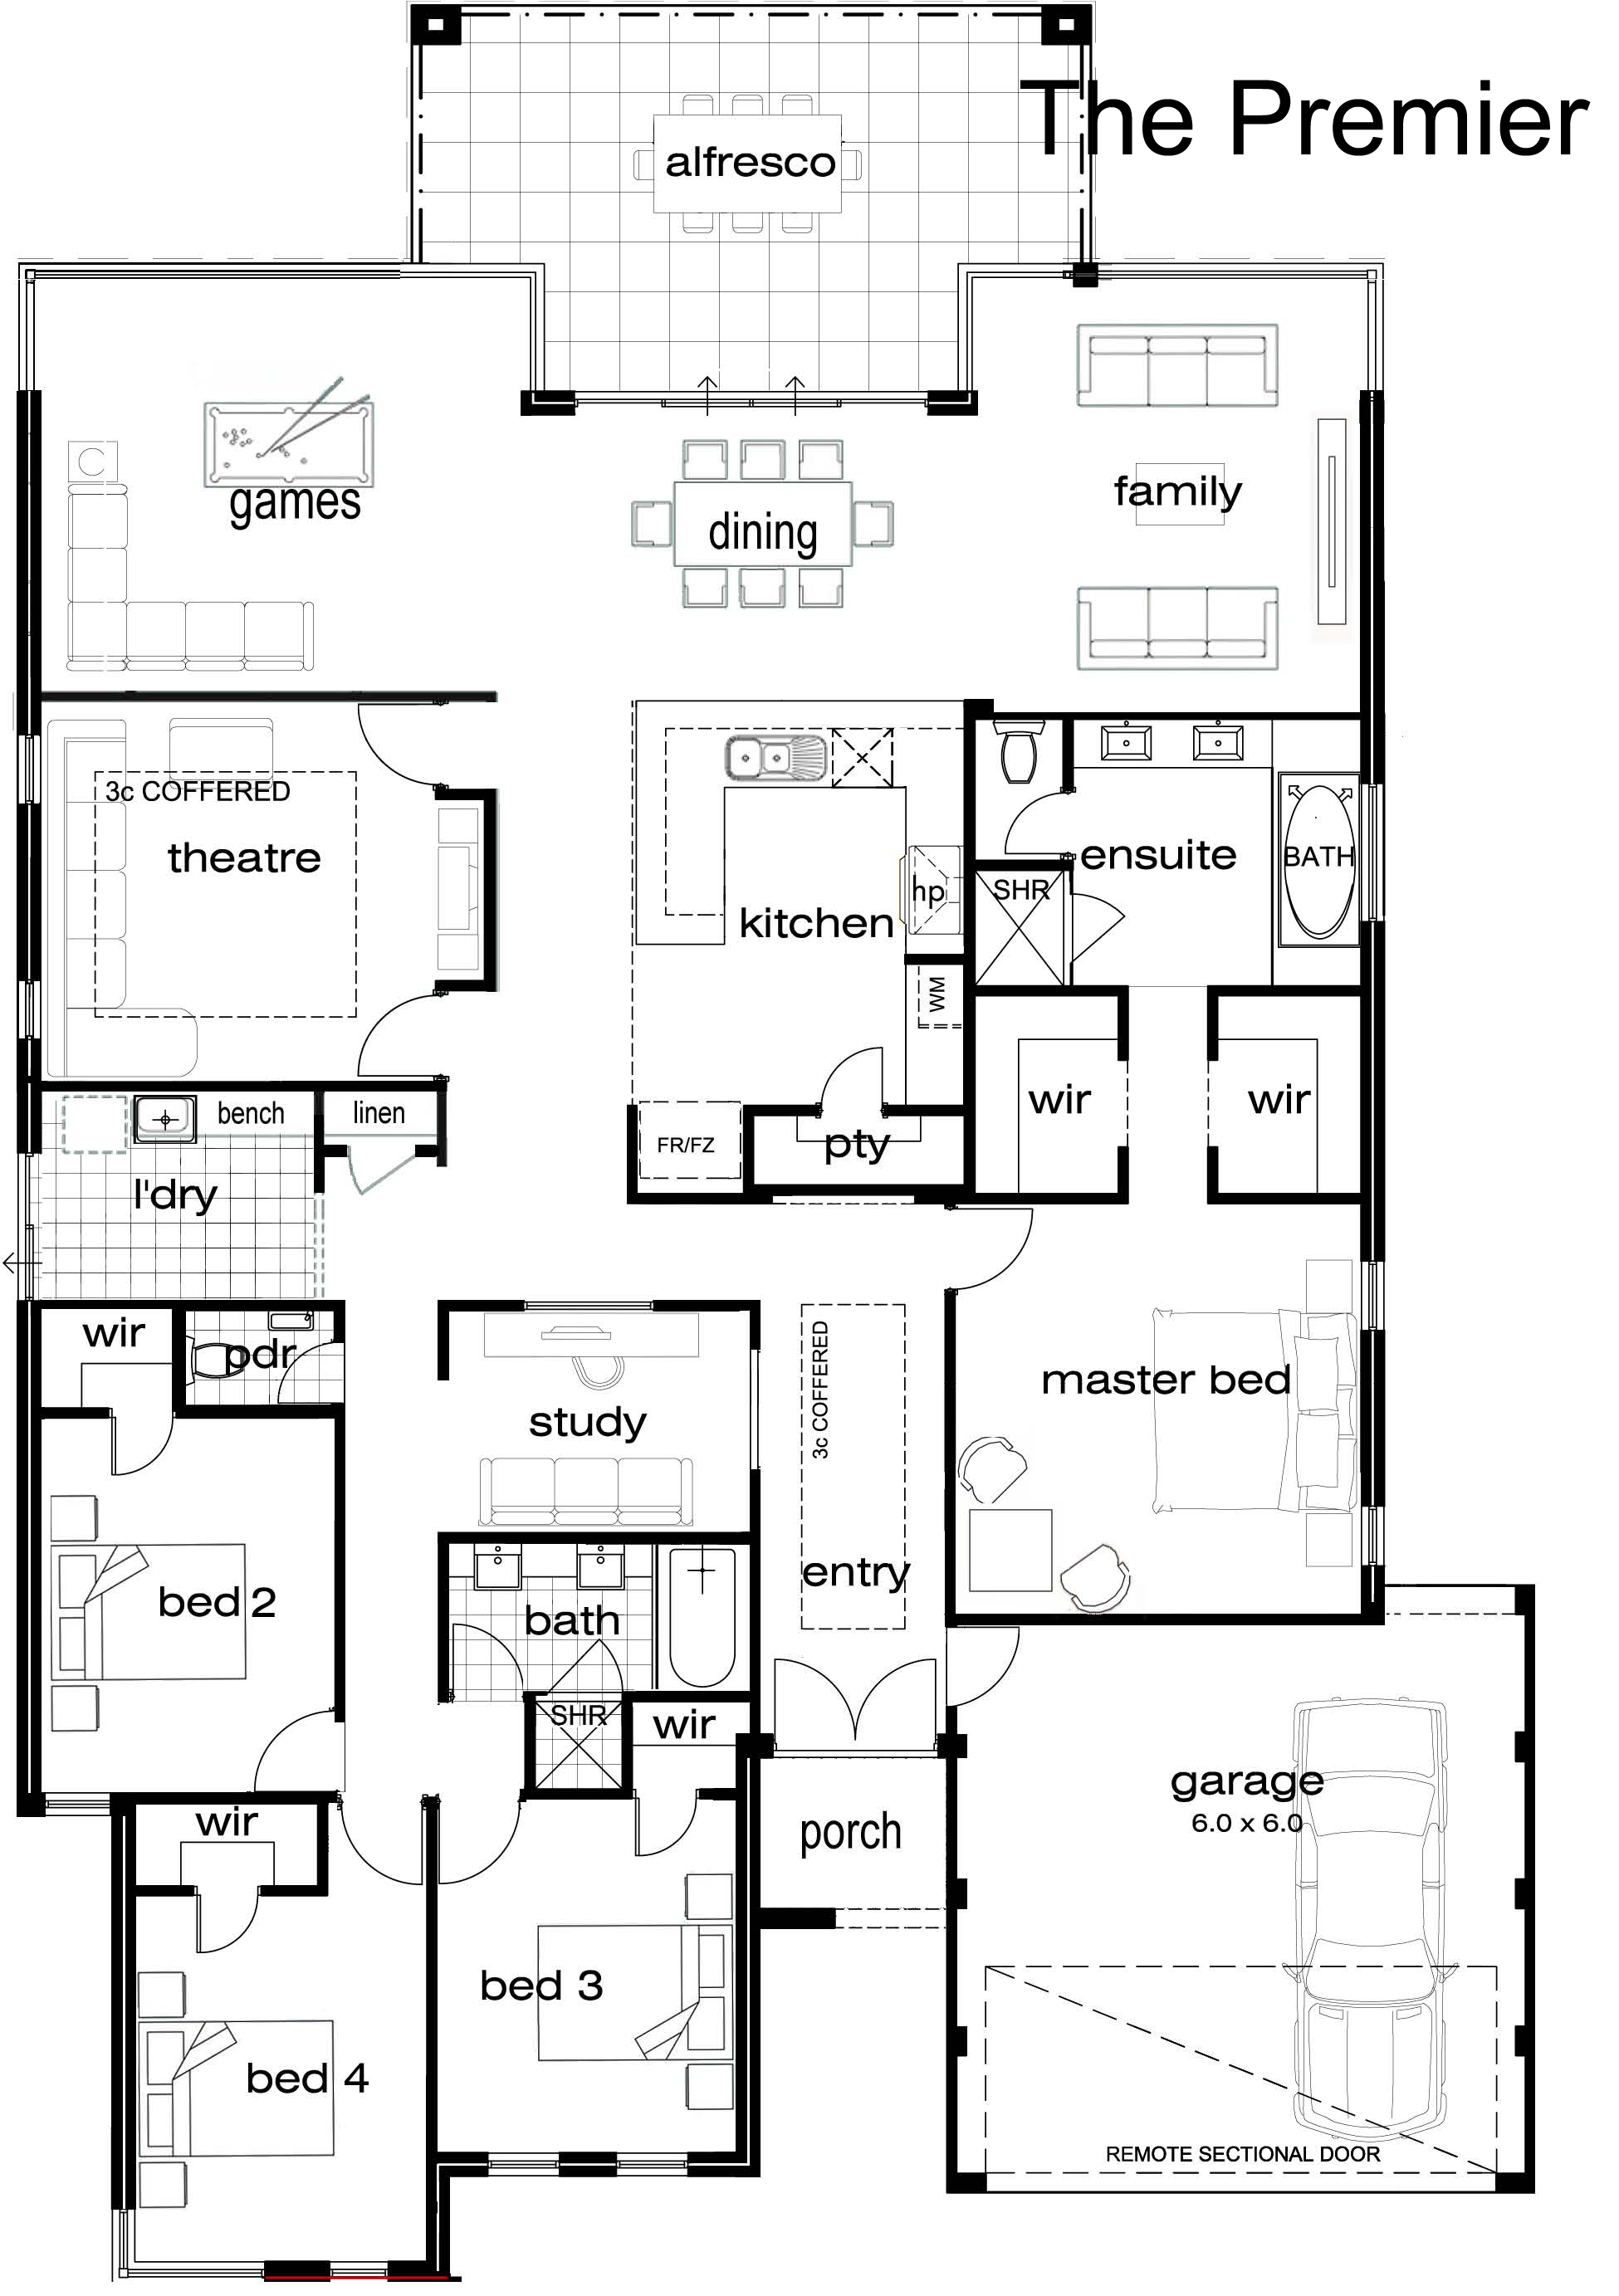 5 bedroom single story house plans bedroom at real estate ...